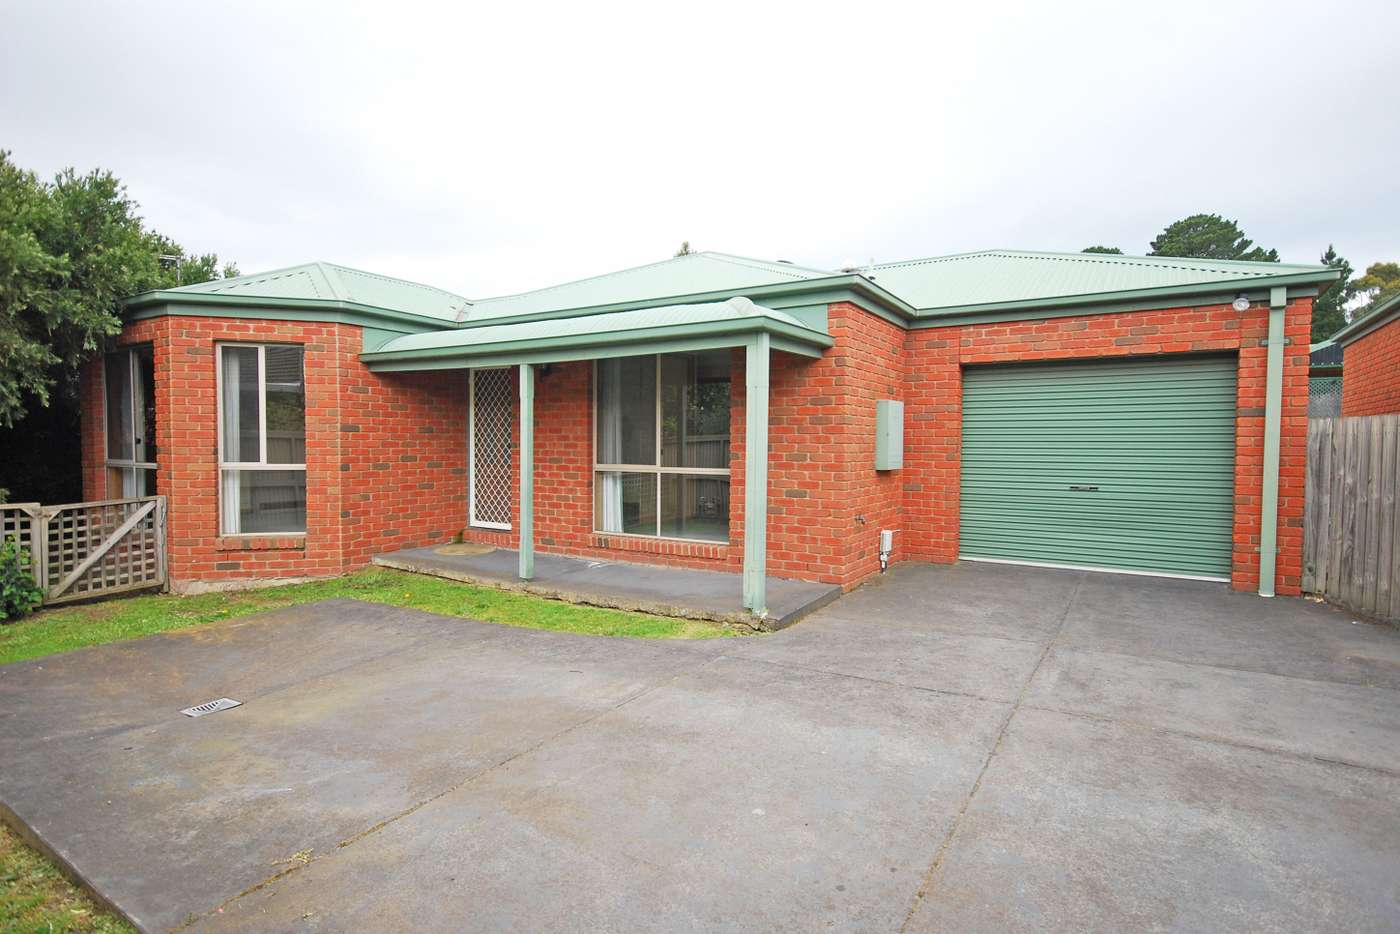 Main view of Homely house listing, 33 Recreation Road, Mount Clear VIC 3350